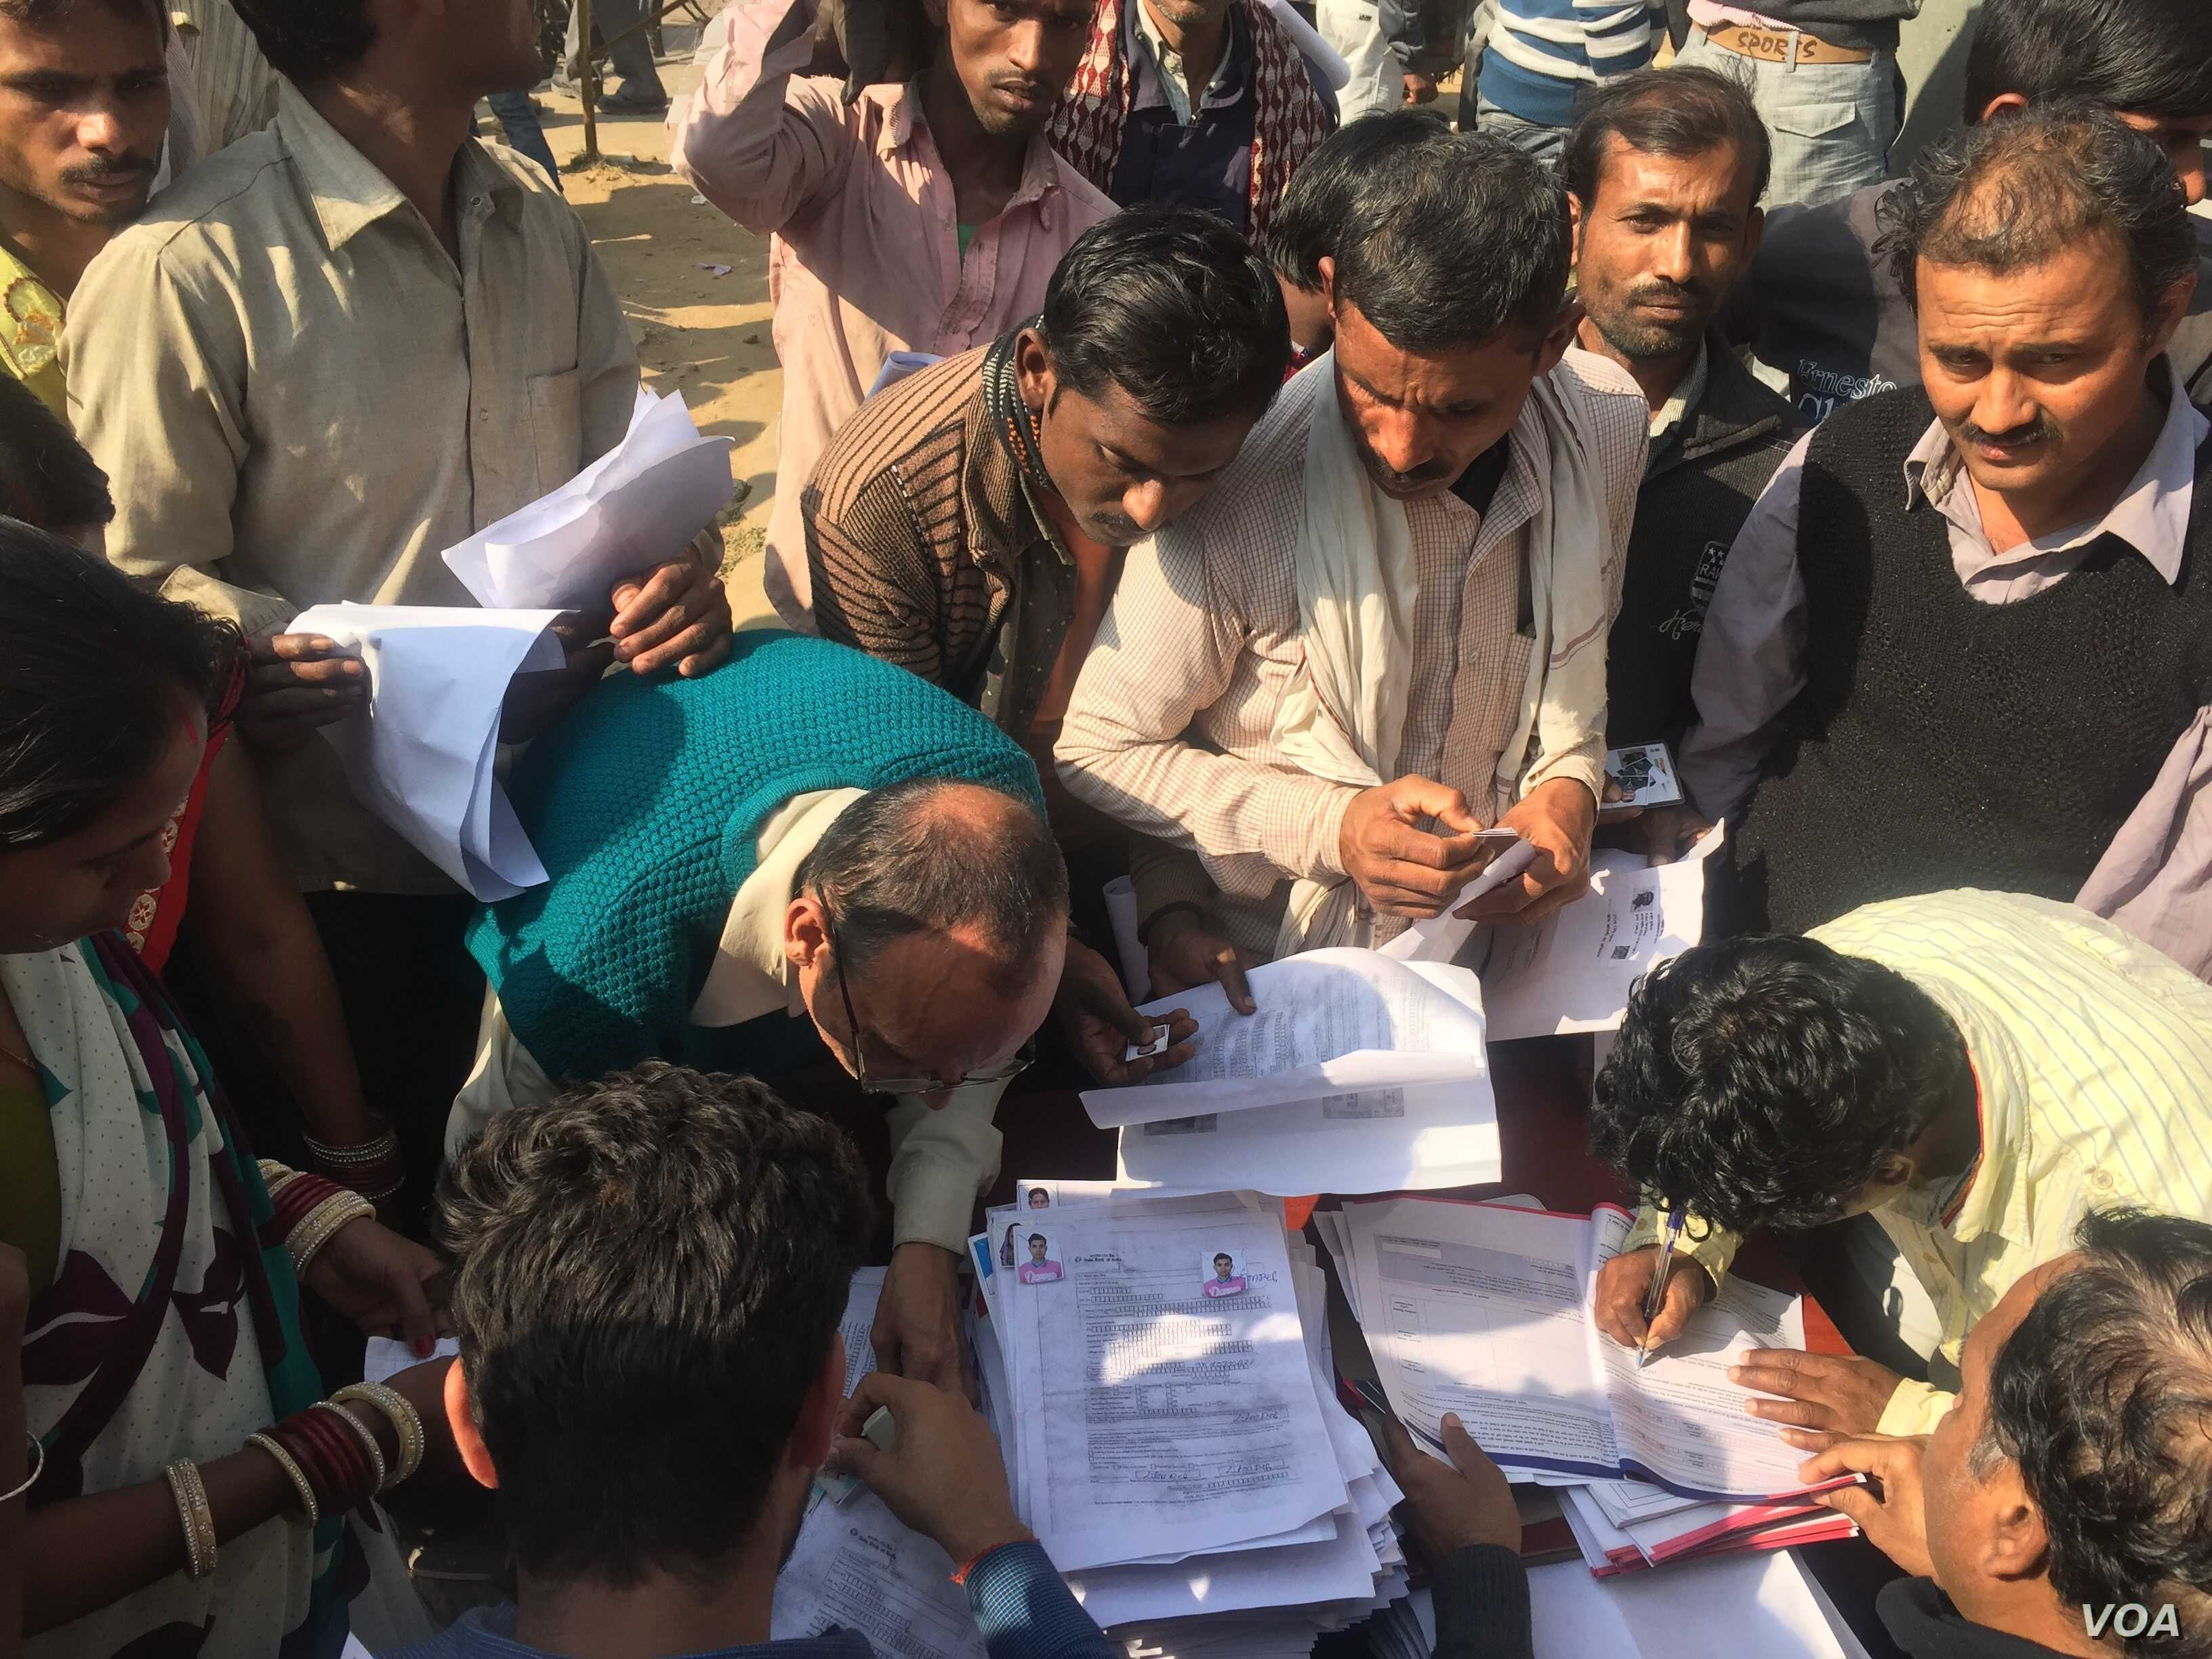 Bank official C.R. Khobba says they expect to open 150 to 200 accounts in a single day at a temporary camp for workers.